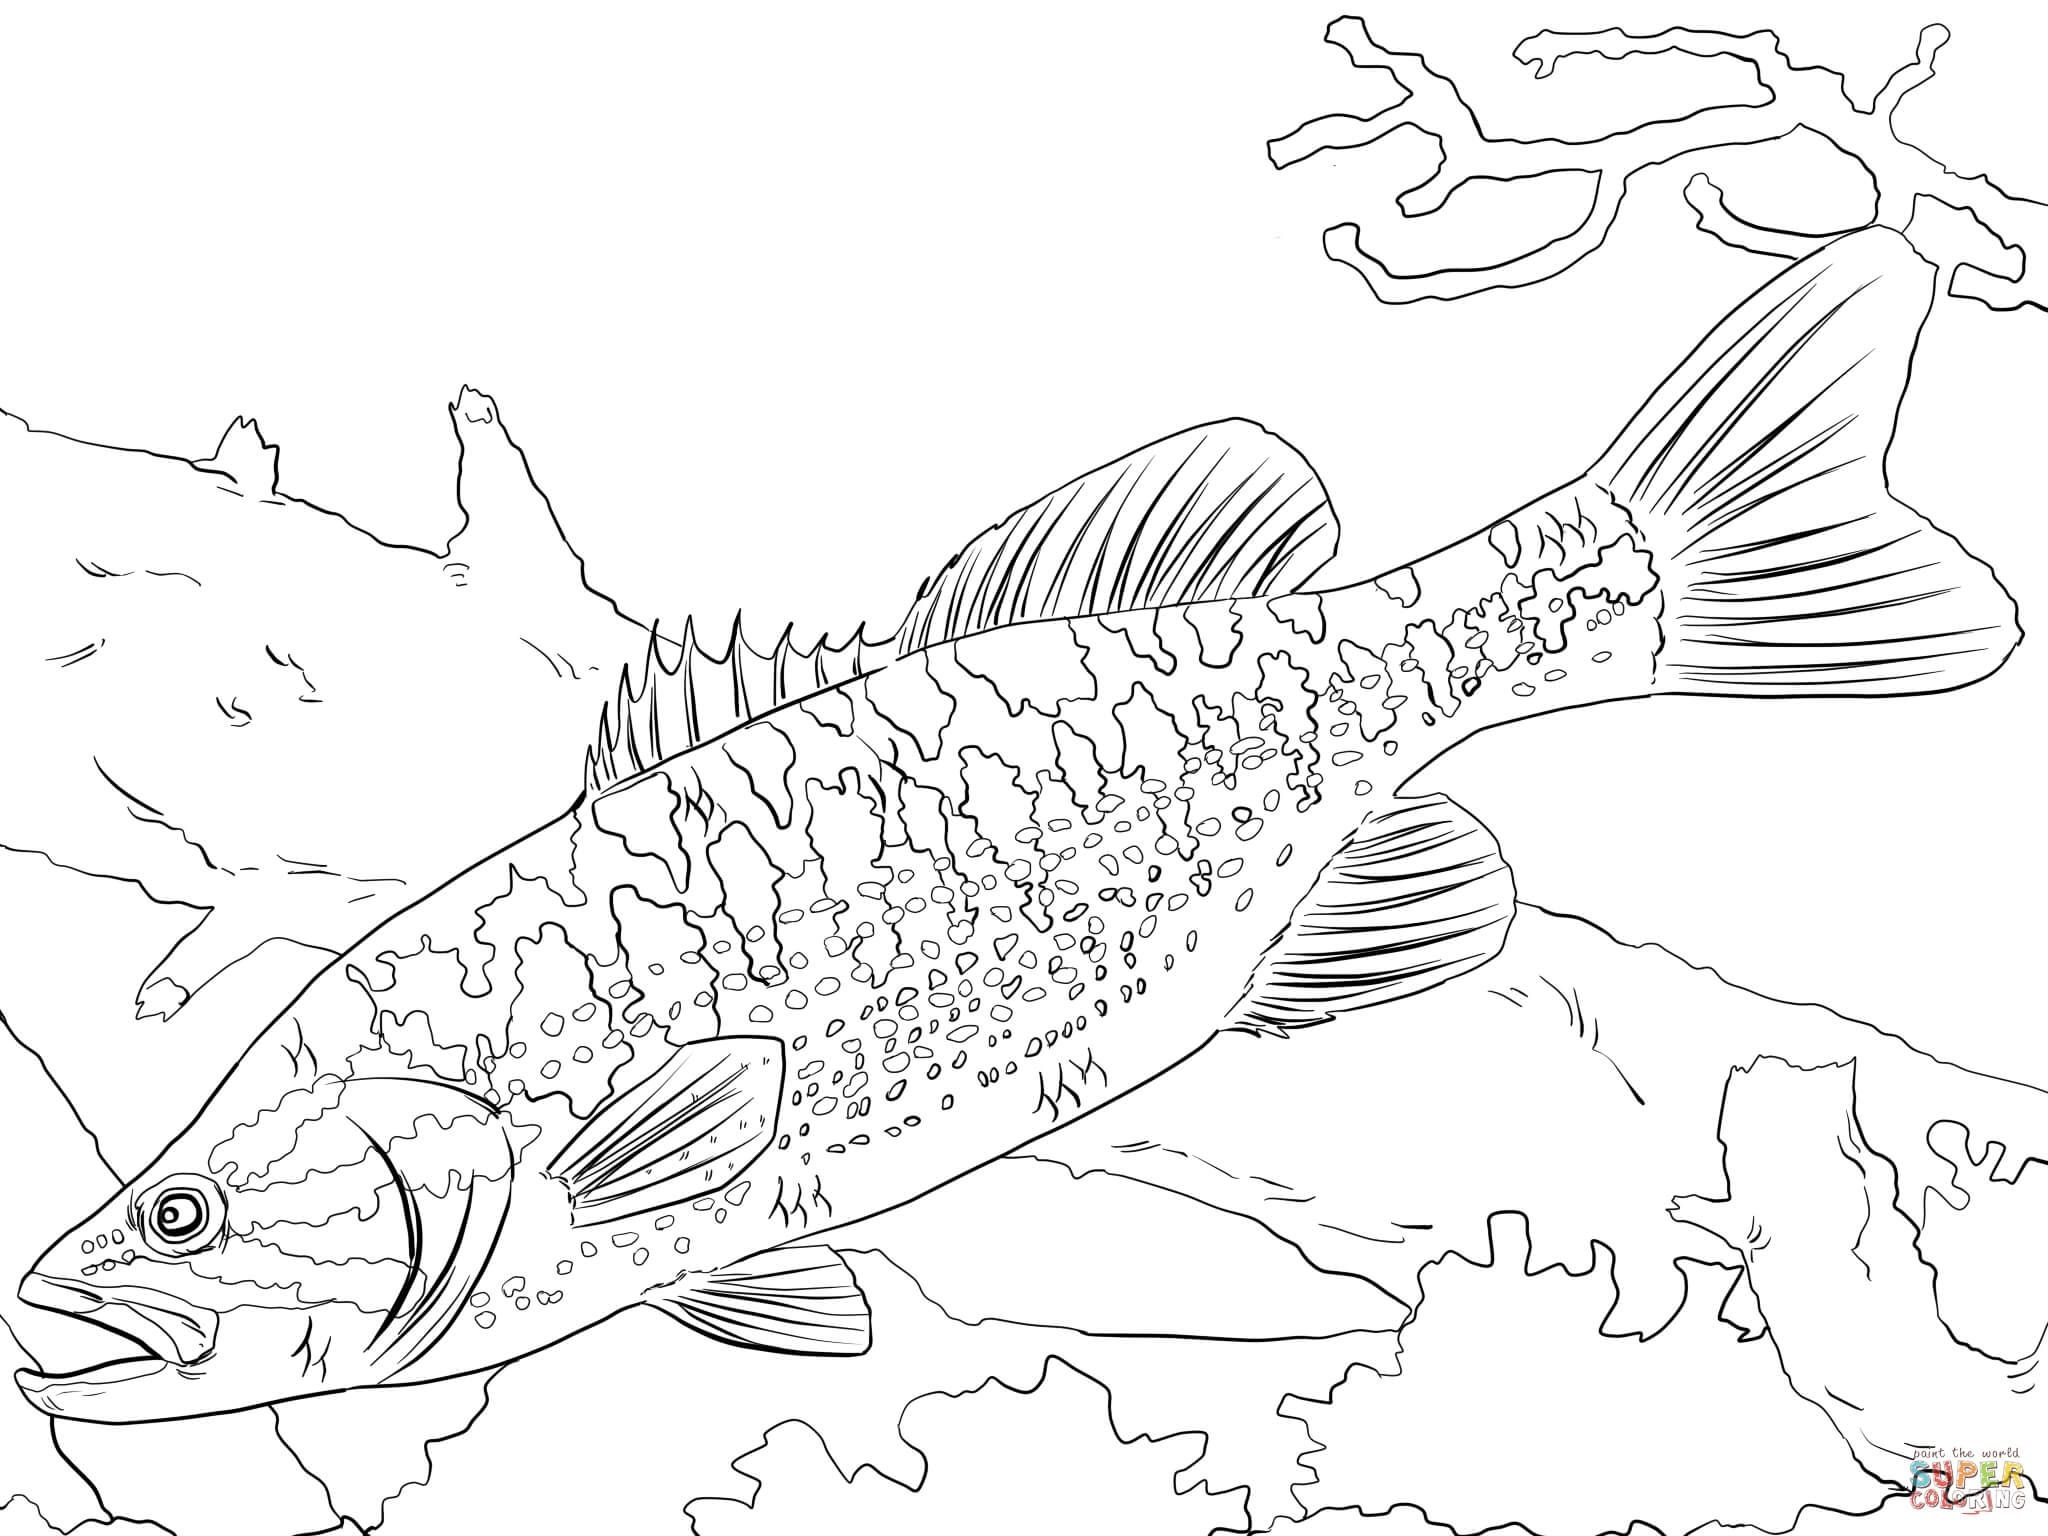 Bass Fishing Coloring Pages Printable Fish Coloring Page Easy Coloring Pages Shark Coloring Pages